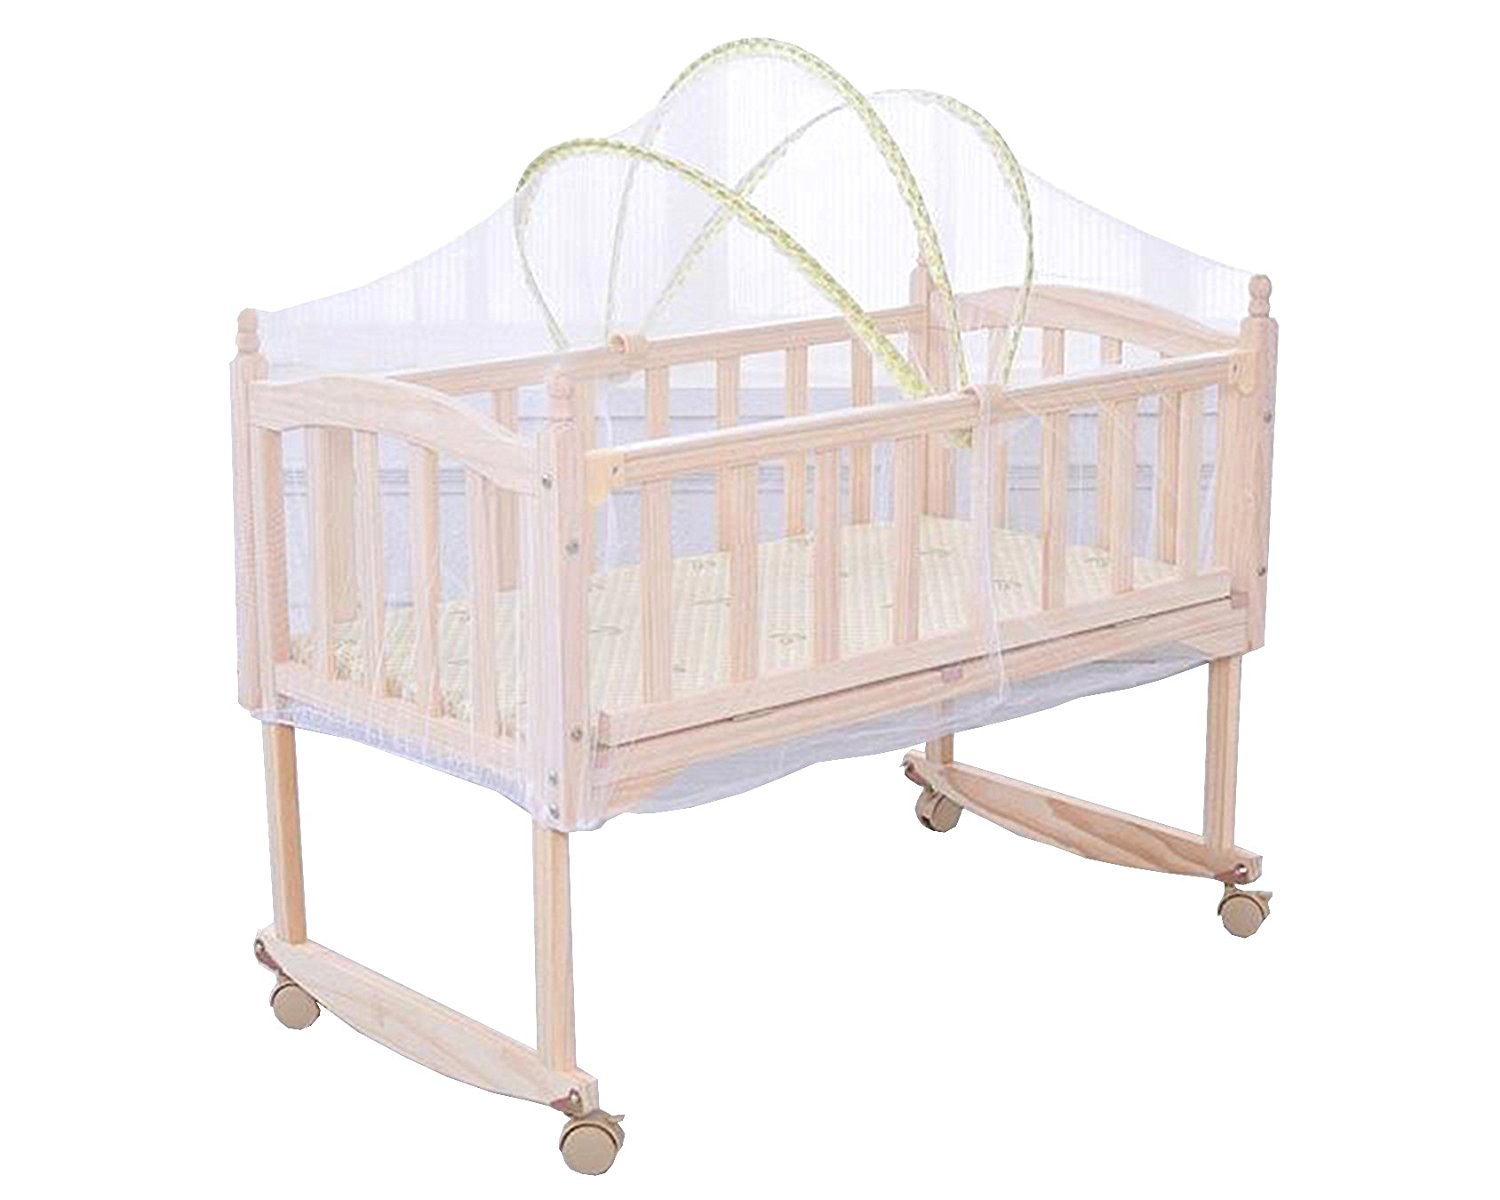 Agfabric Baby Cradle Bed Mosquito Net,Mosquito Guard Baby Crib Netting Tent Bedding for Baby Kids Children's Room, Folding Tent Bedding